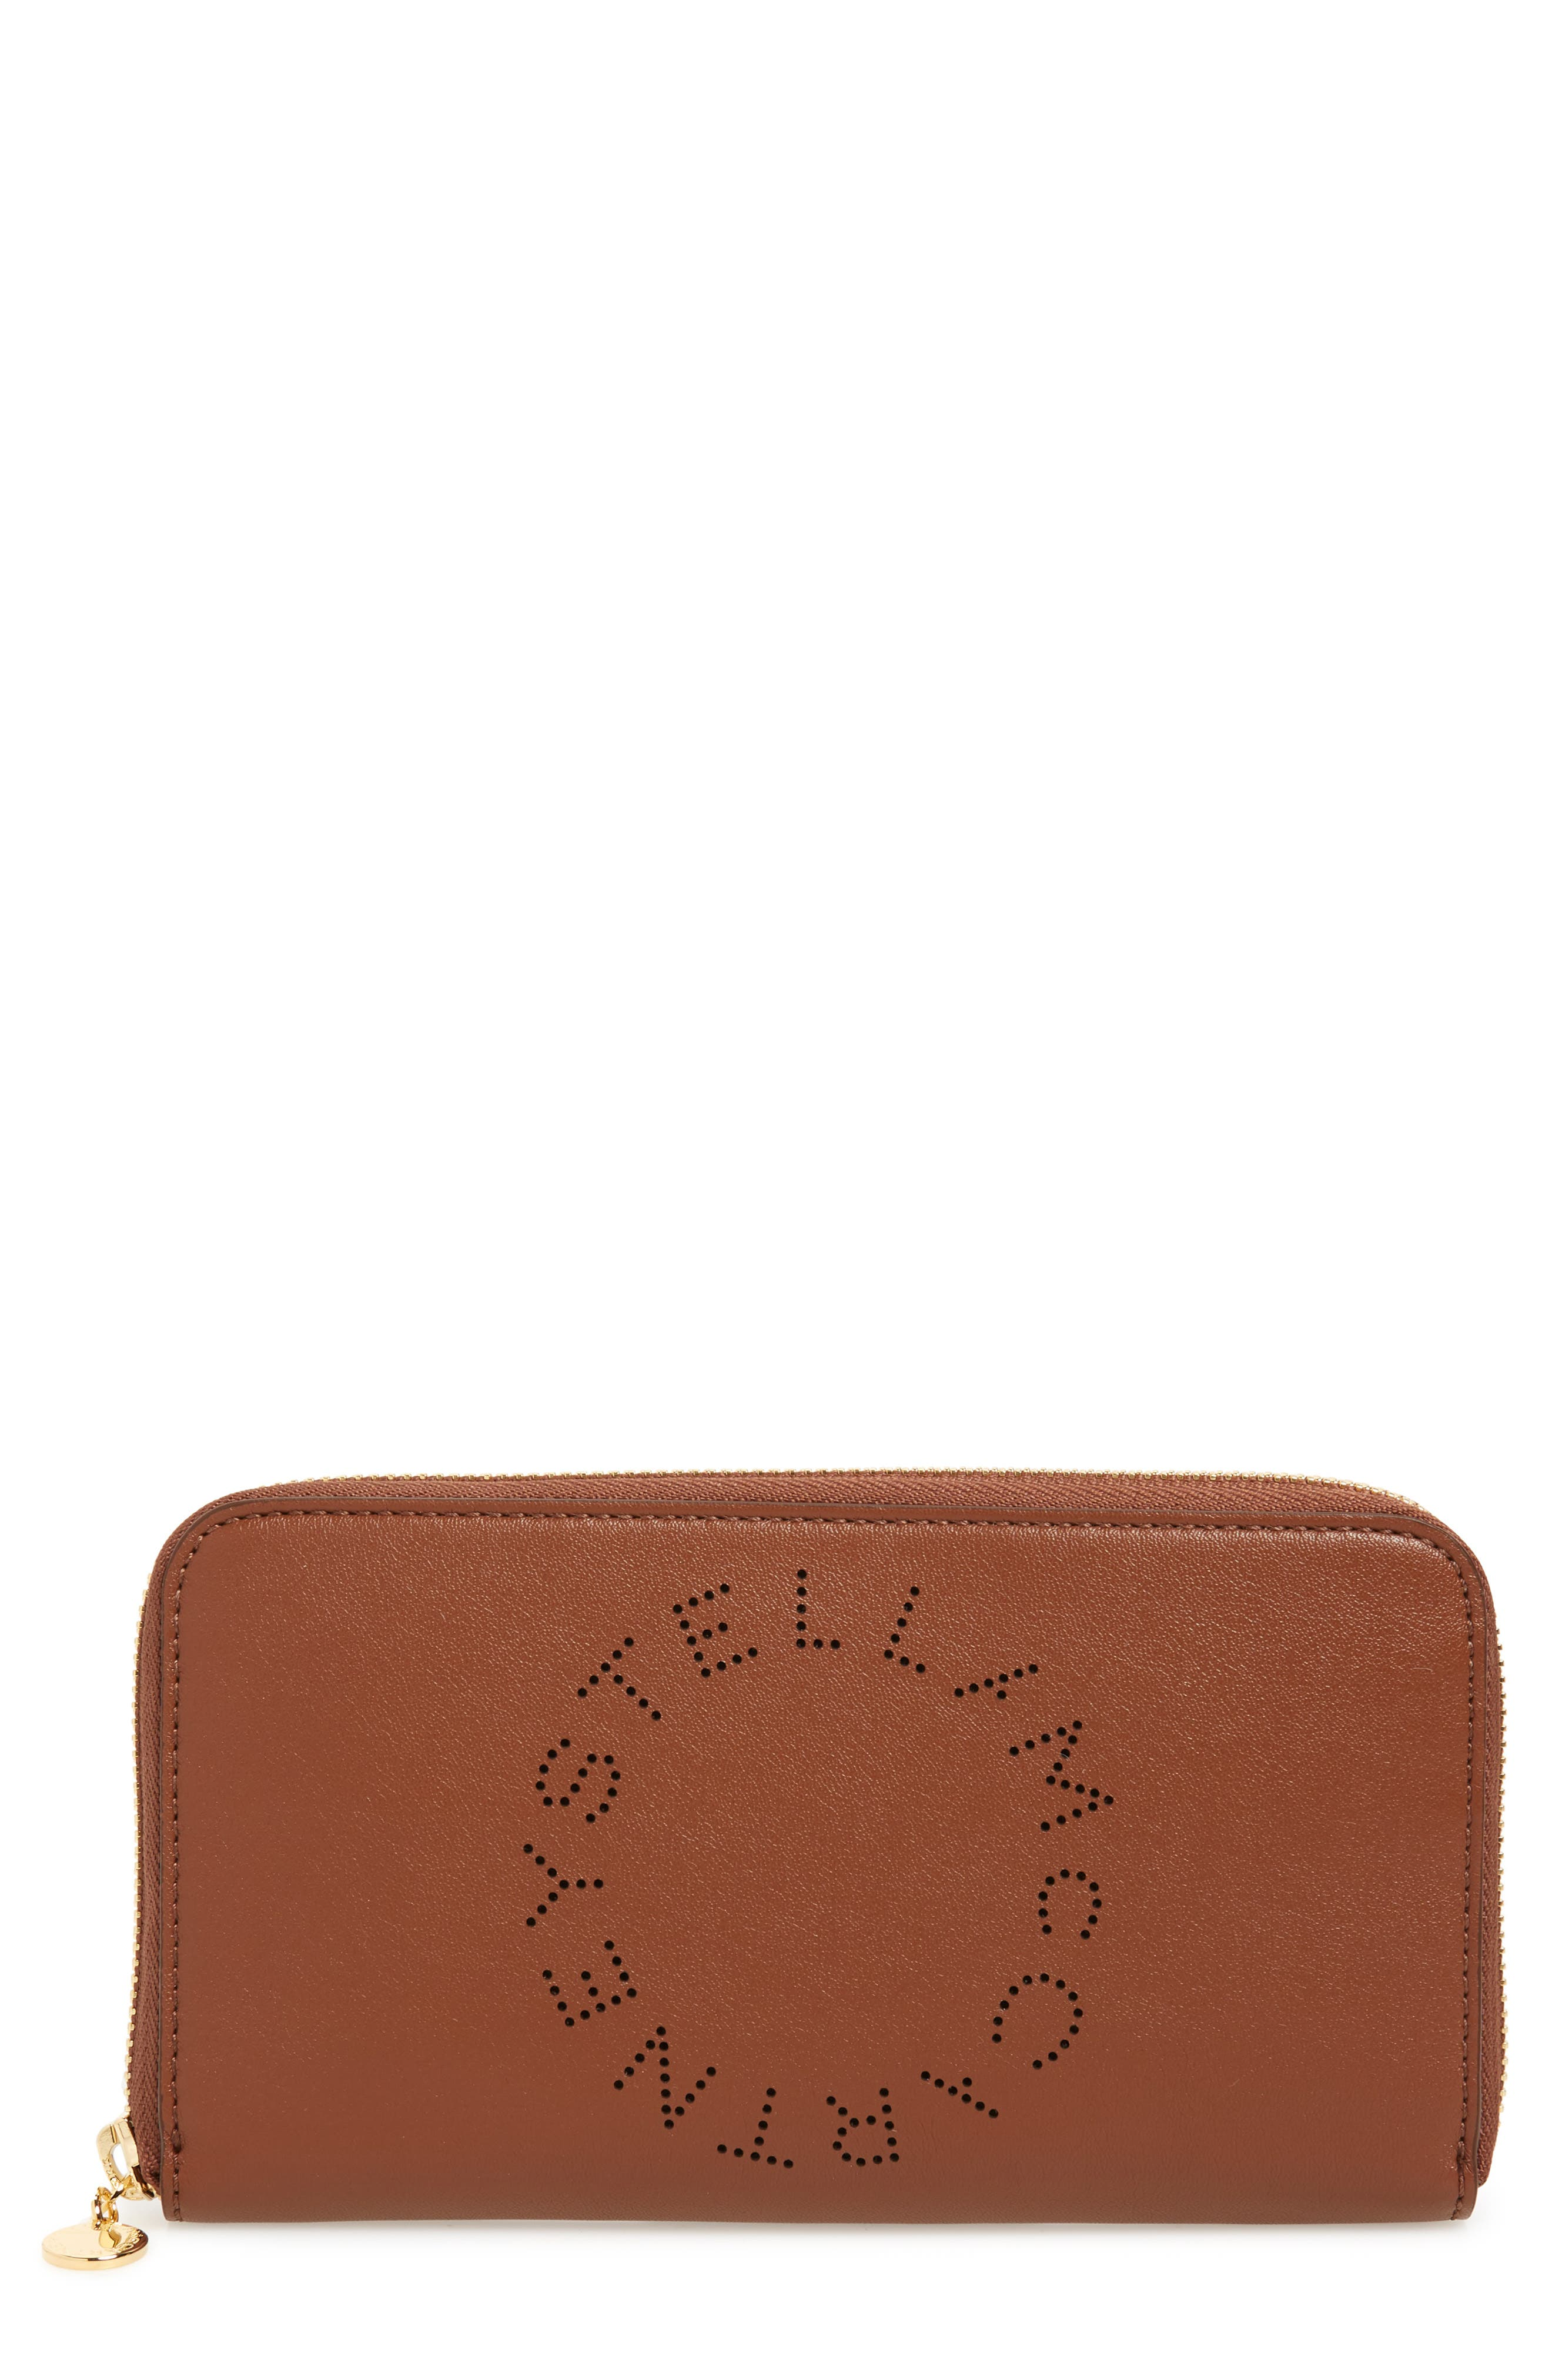 Stella Mccartney Alter Nappa Perforated Logo Faux Leather Wallet - Brown